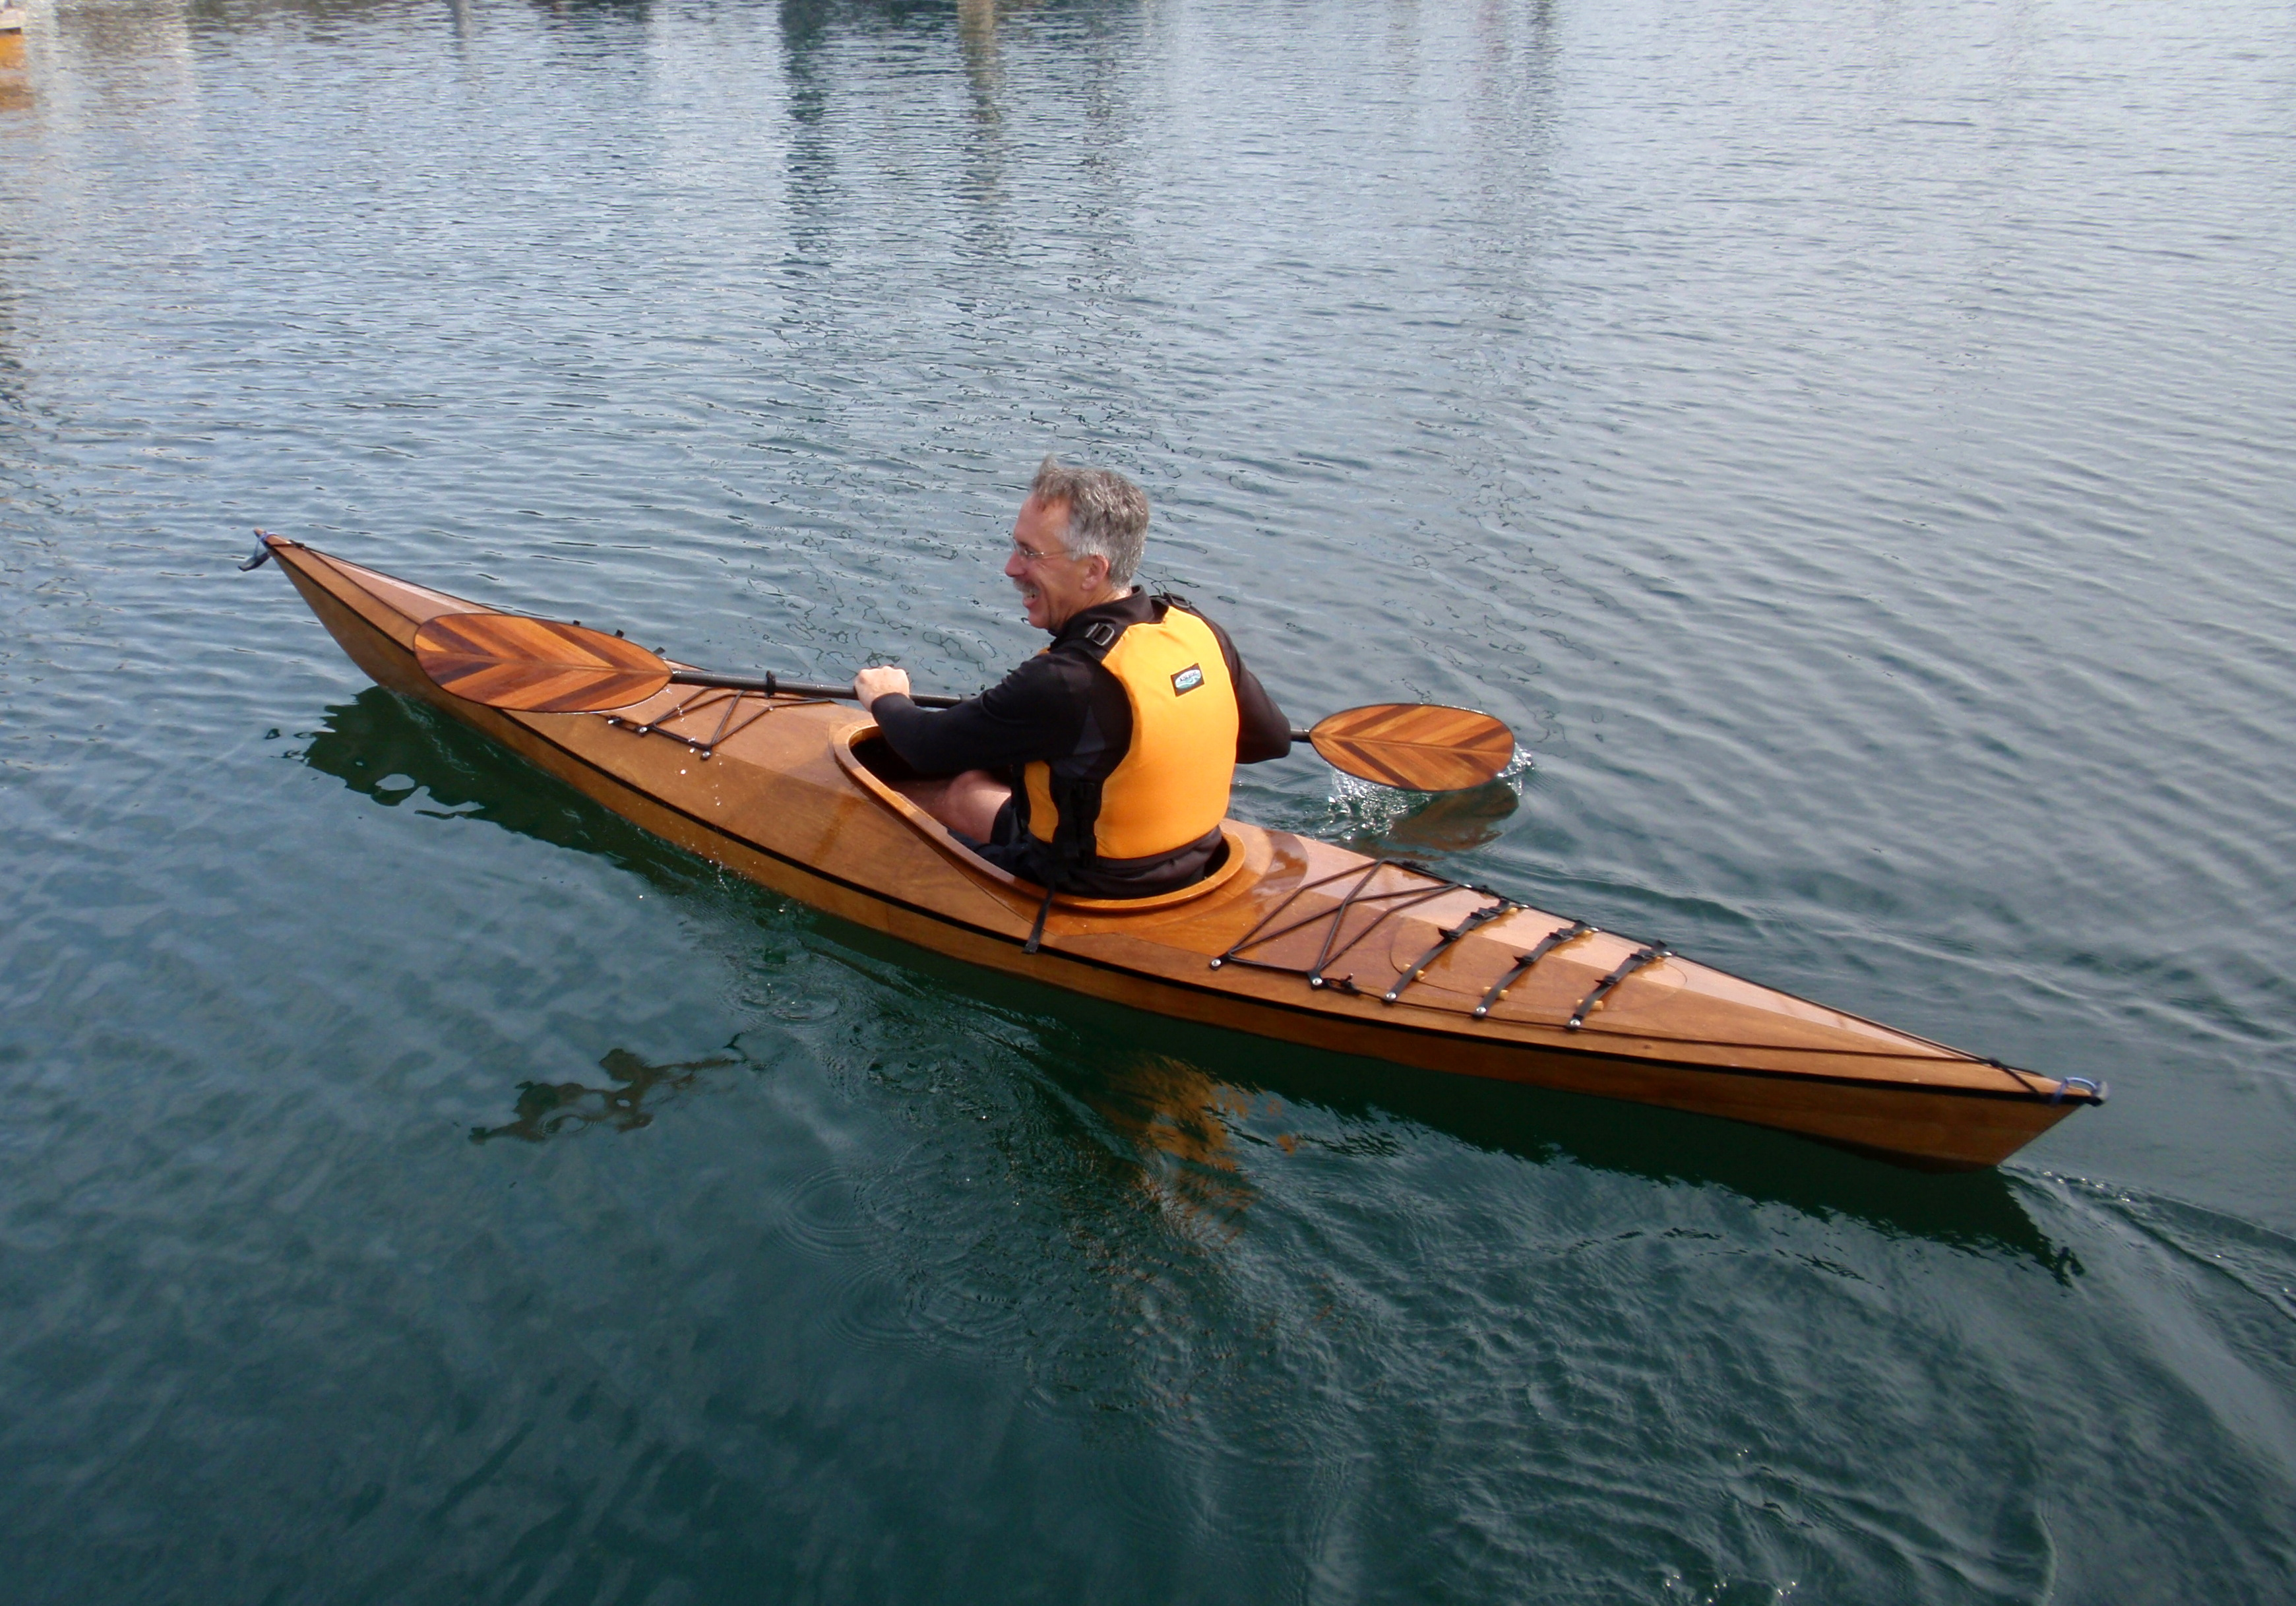 Wooden kayak company is a profile of perseverance